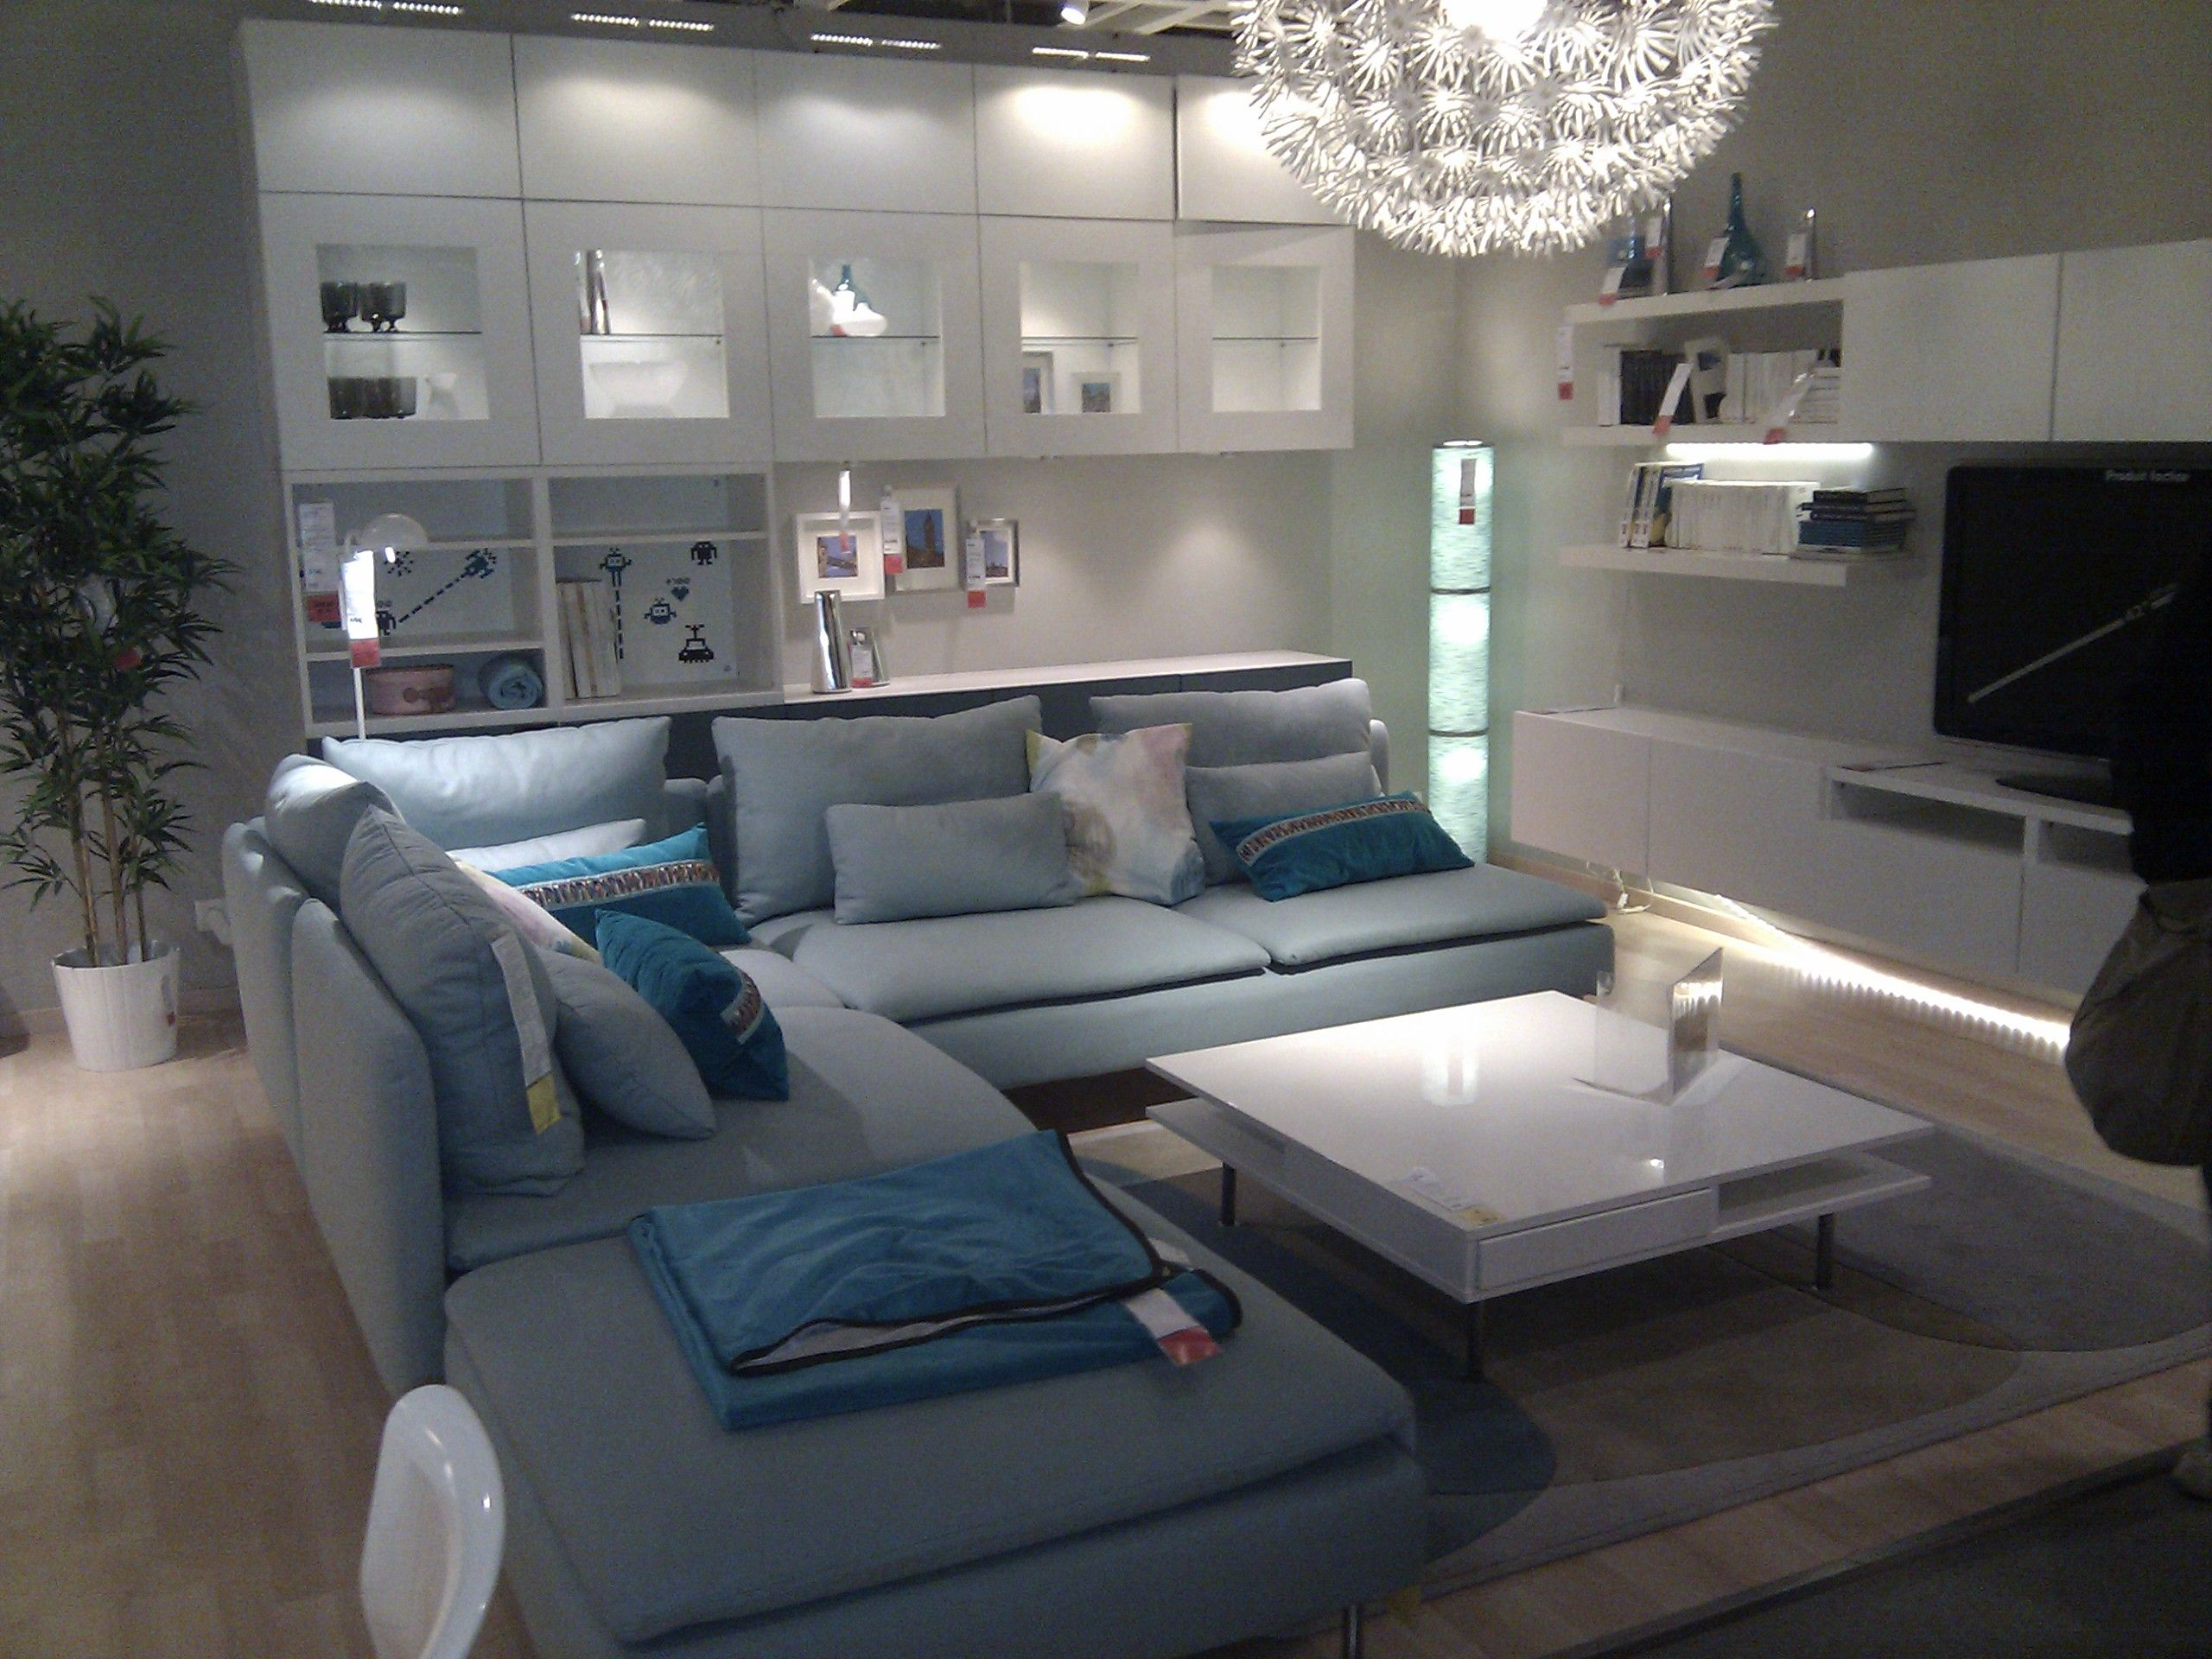 Coin salon IKEA Tourville la Rivi¨re Dream home